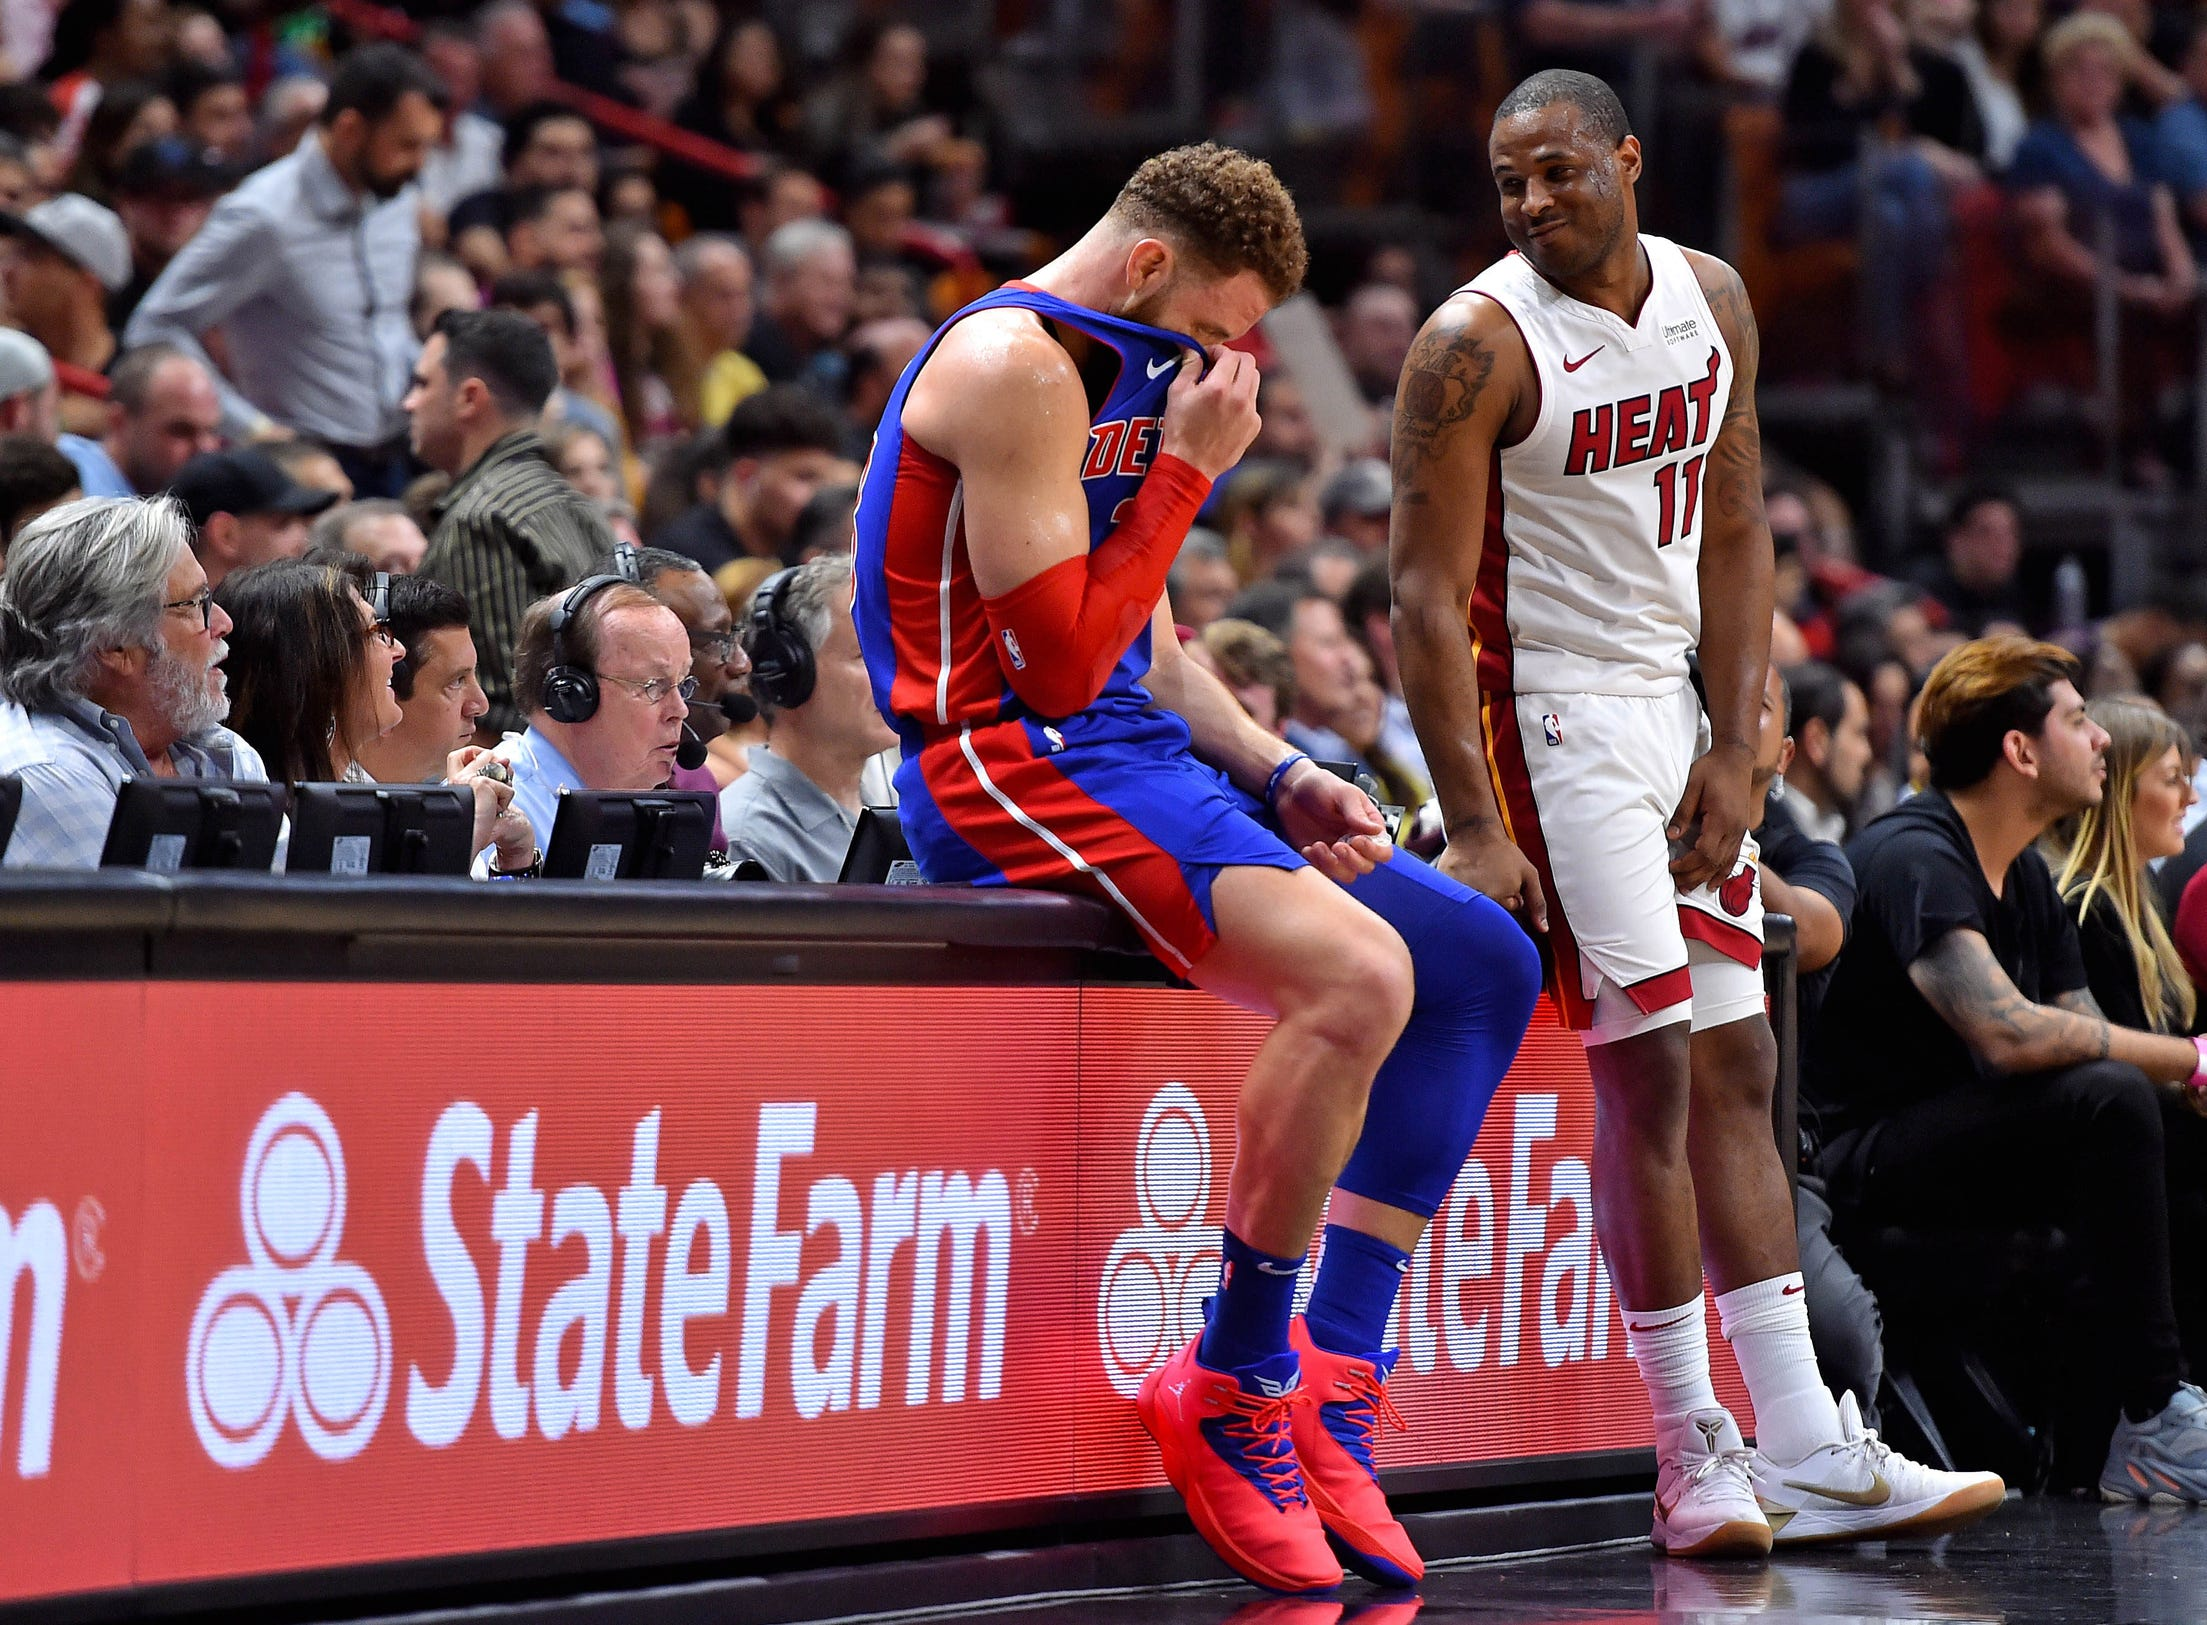 Miami Heat guard Dion Waiters (right) talks with Detroit Pistons forward Blake Griffin (left) during the second half at American Airlines Arena on Wednesday, March 13, 2019.